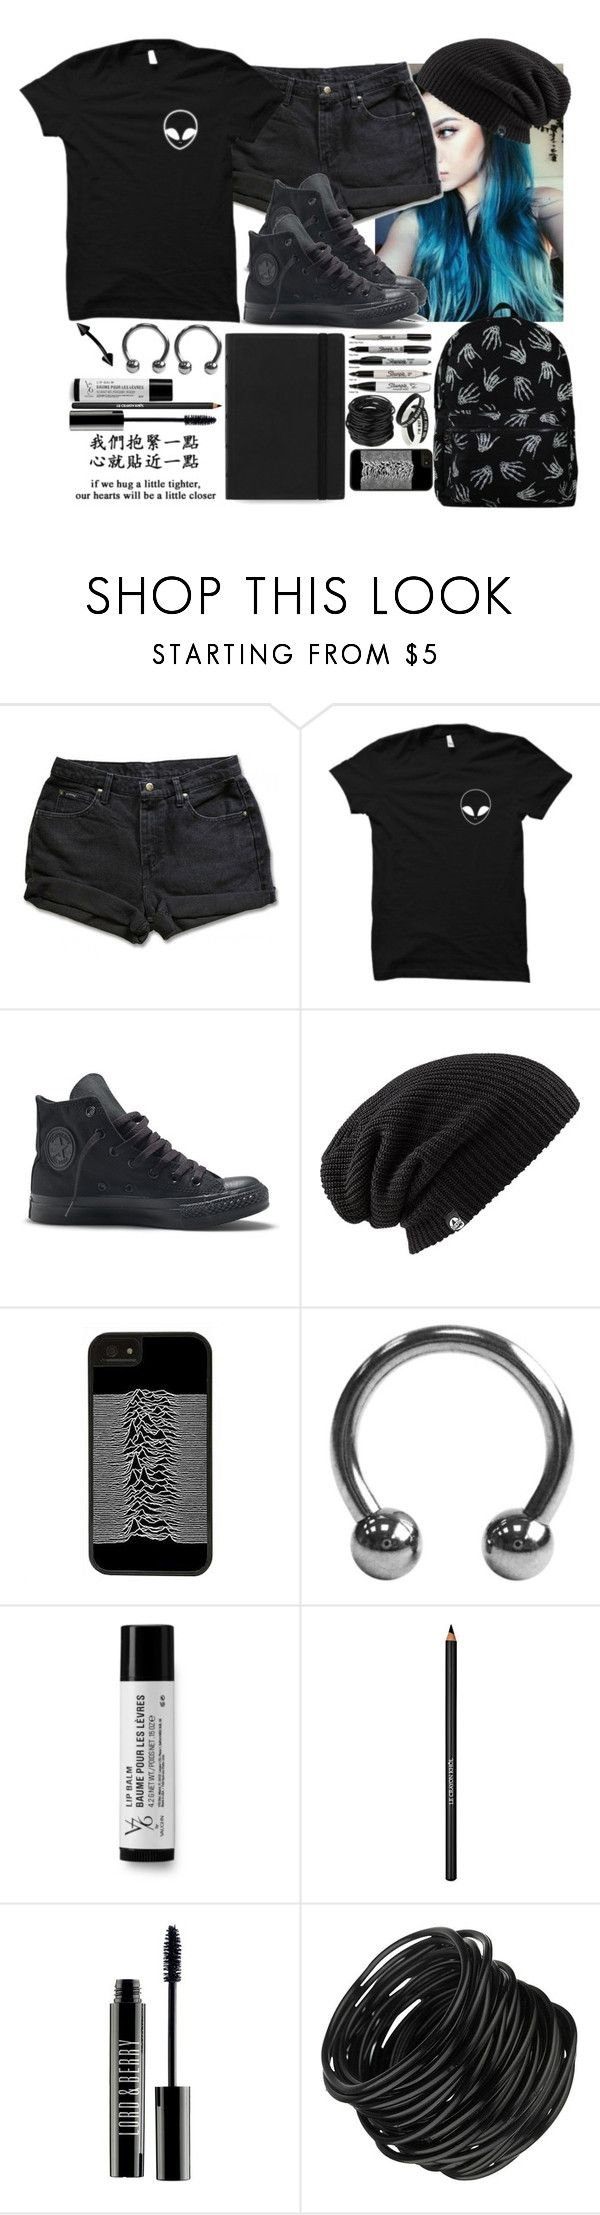 """""""[Travelling to Greece w/ the girls]"""" by purplemonkeys005 ❤ liked on Polyvore featuring Mavi, Converse, FiloFax, CellPowerCases, V76 by Vaughn, Lancôme, Lord & Berry and mandy"""